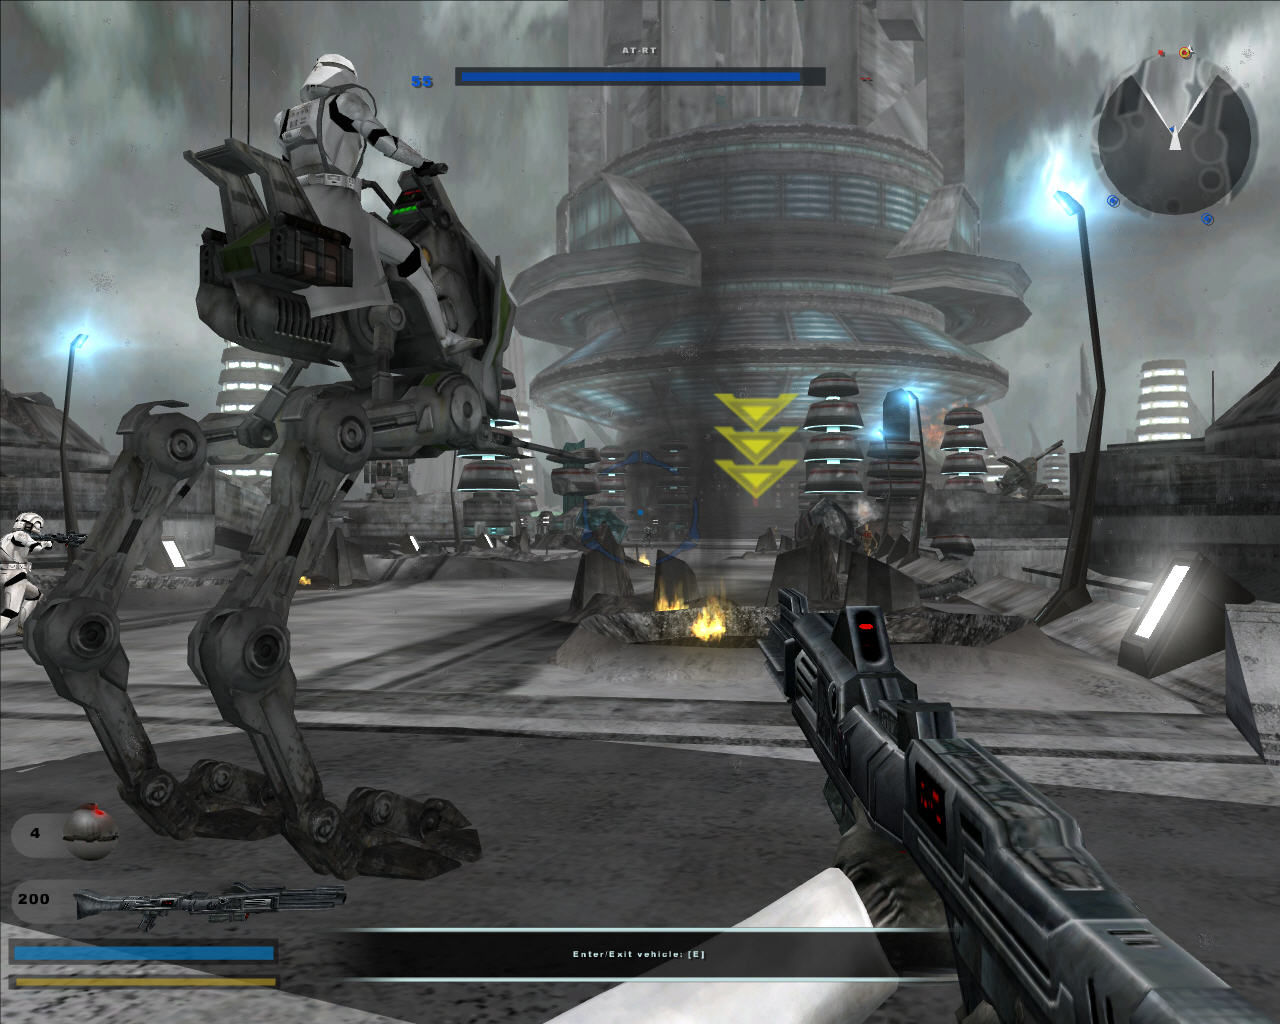 Star Wars: Battlefront II Windows AT-RT Walker. You can control it, if you want to.